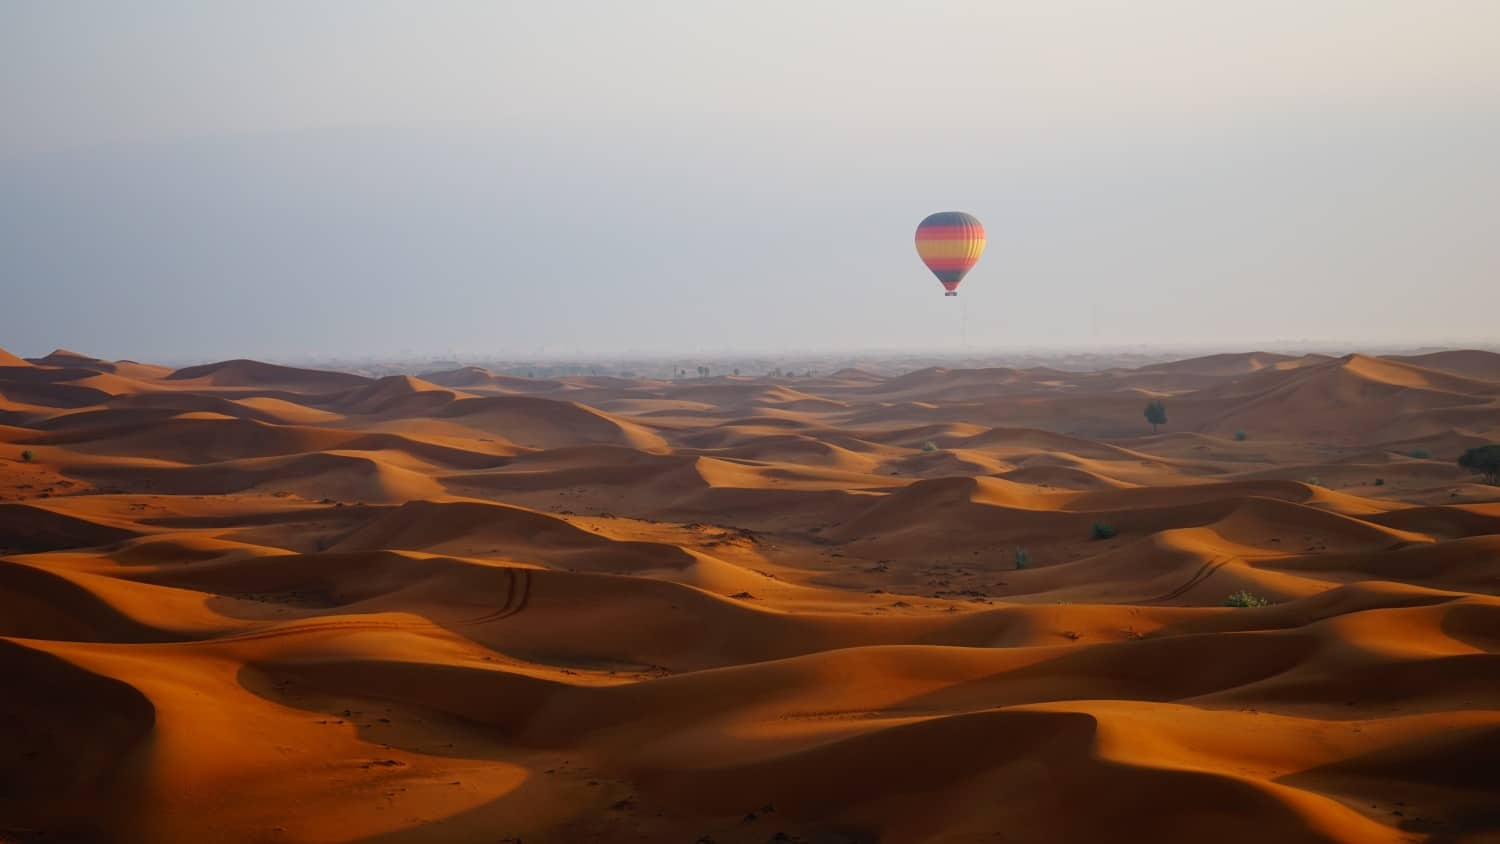 Going for a Balloon Ride in Dubai